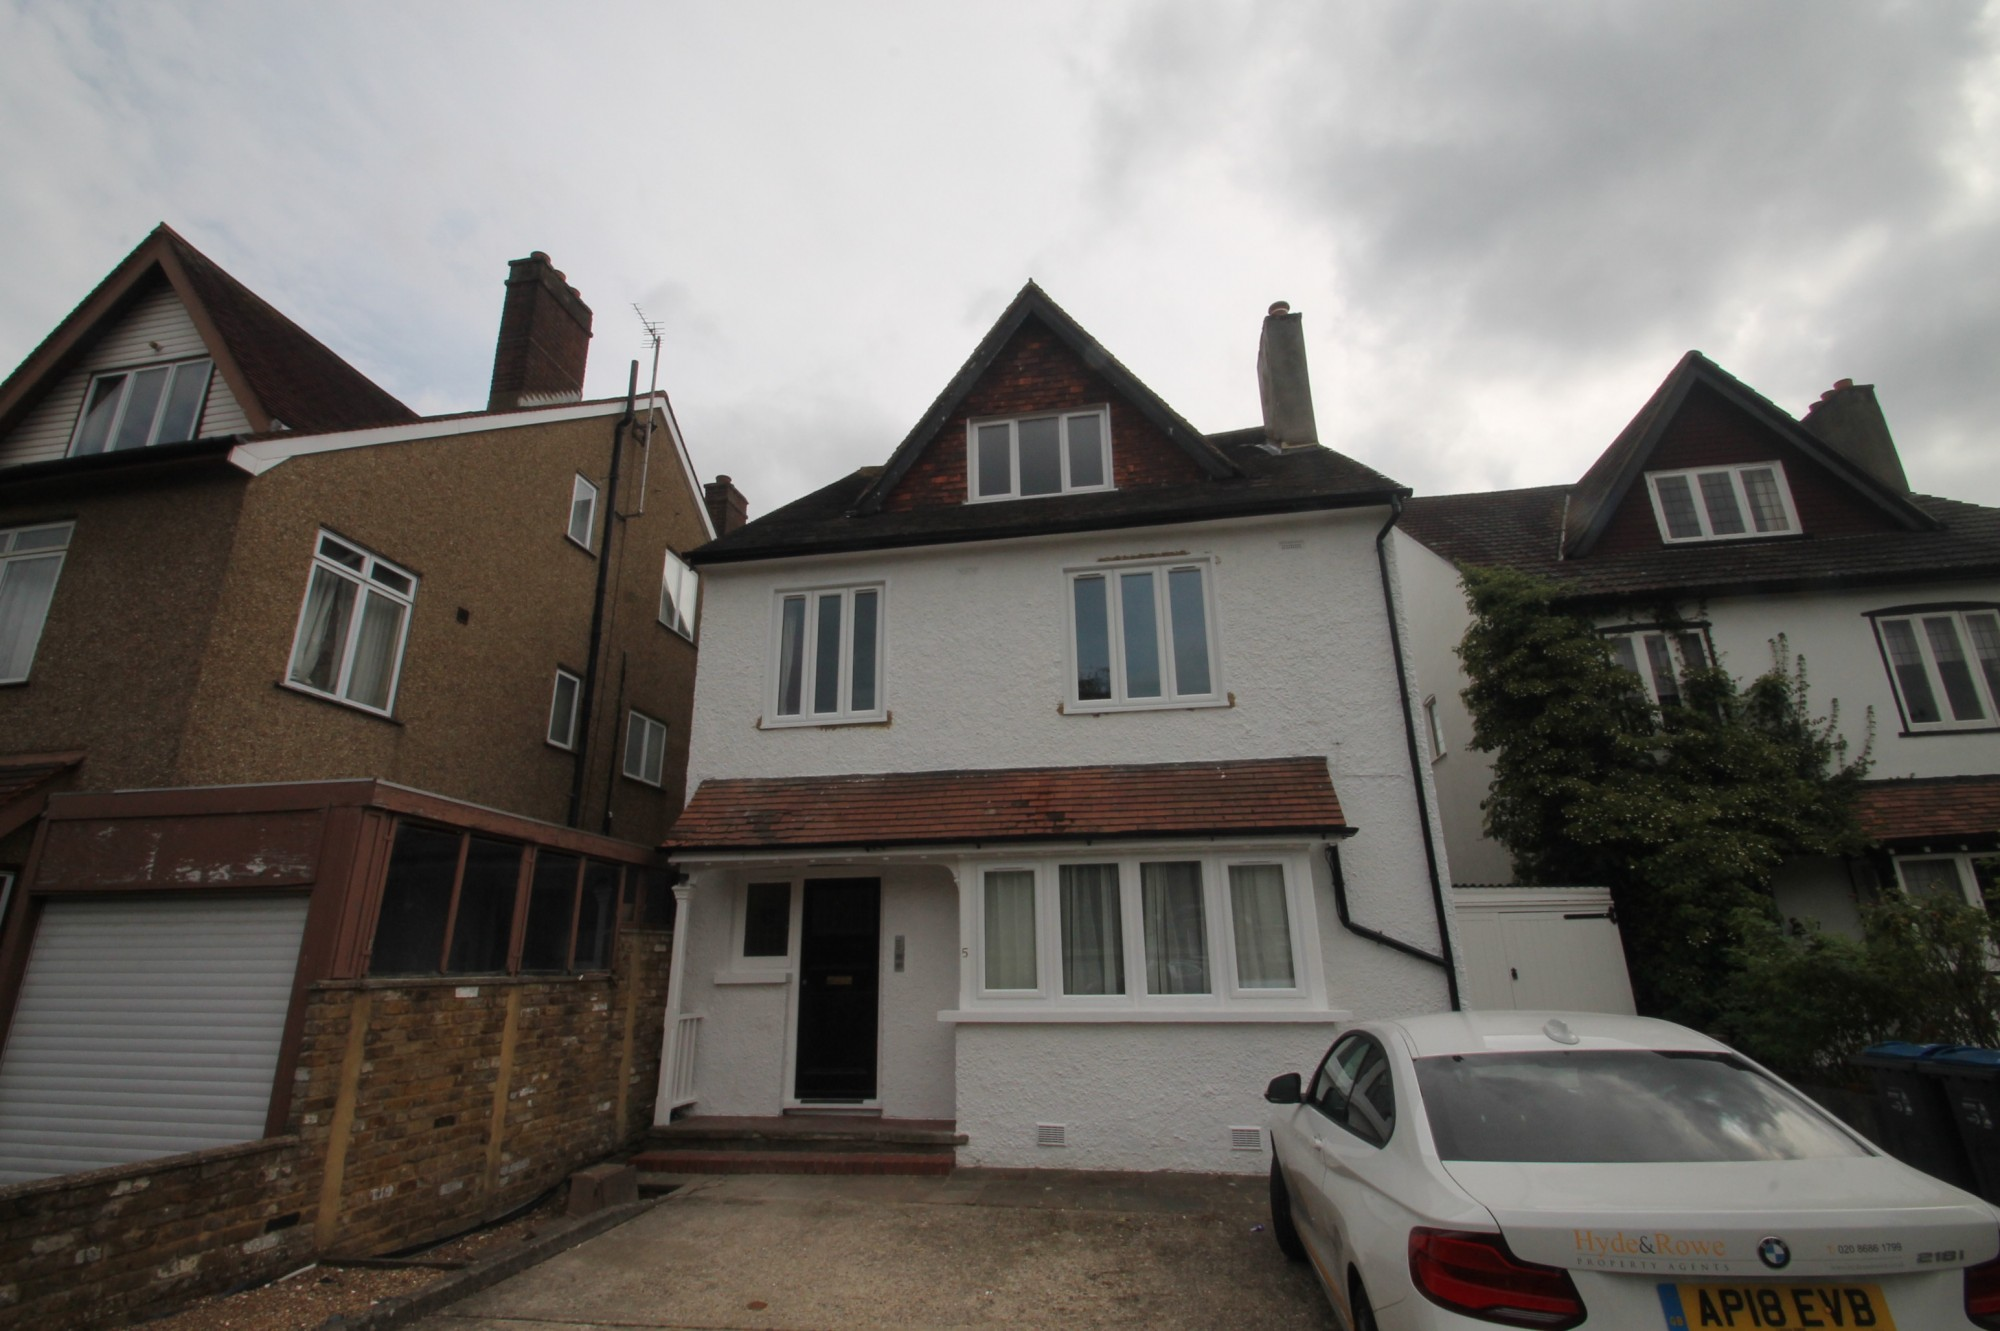 Image of Property for Sale in South Croydon